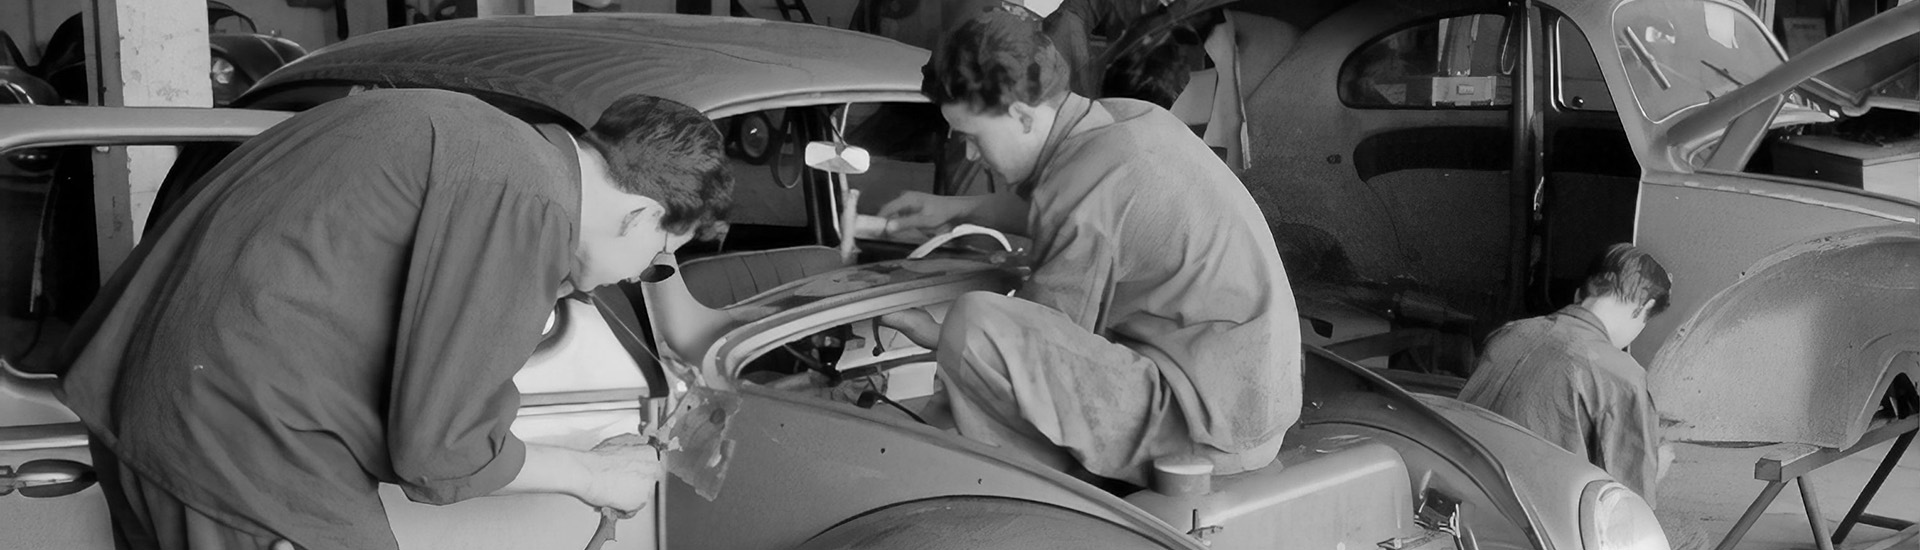 men-looking-at-working-on-car-fixing